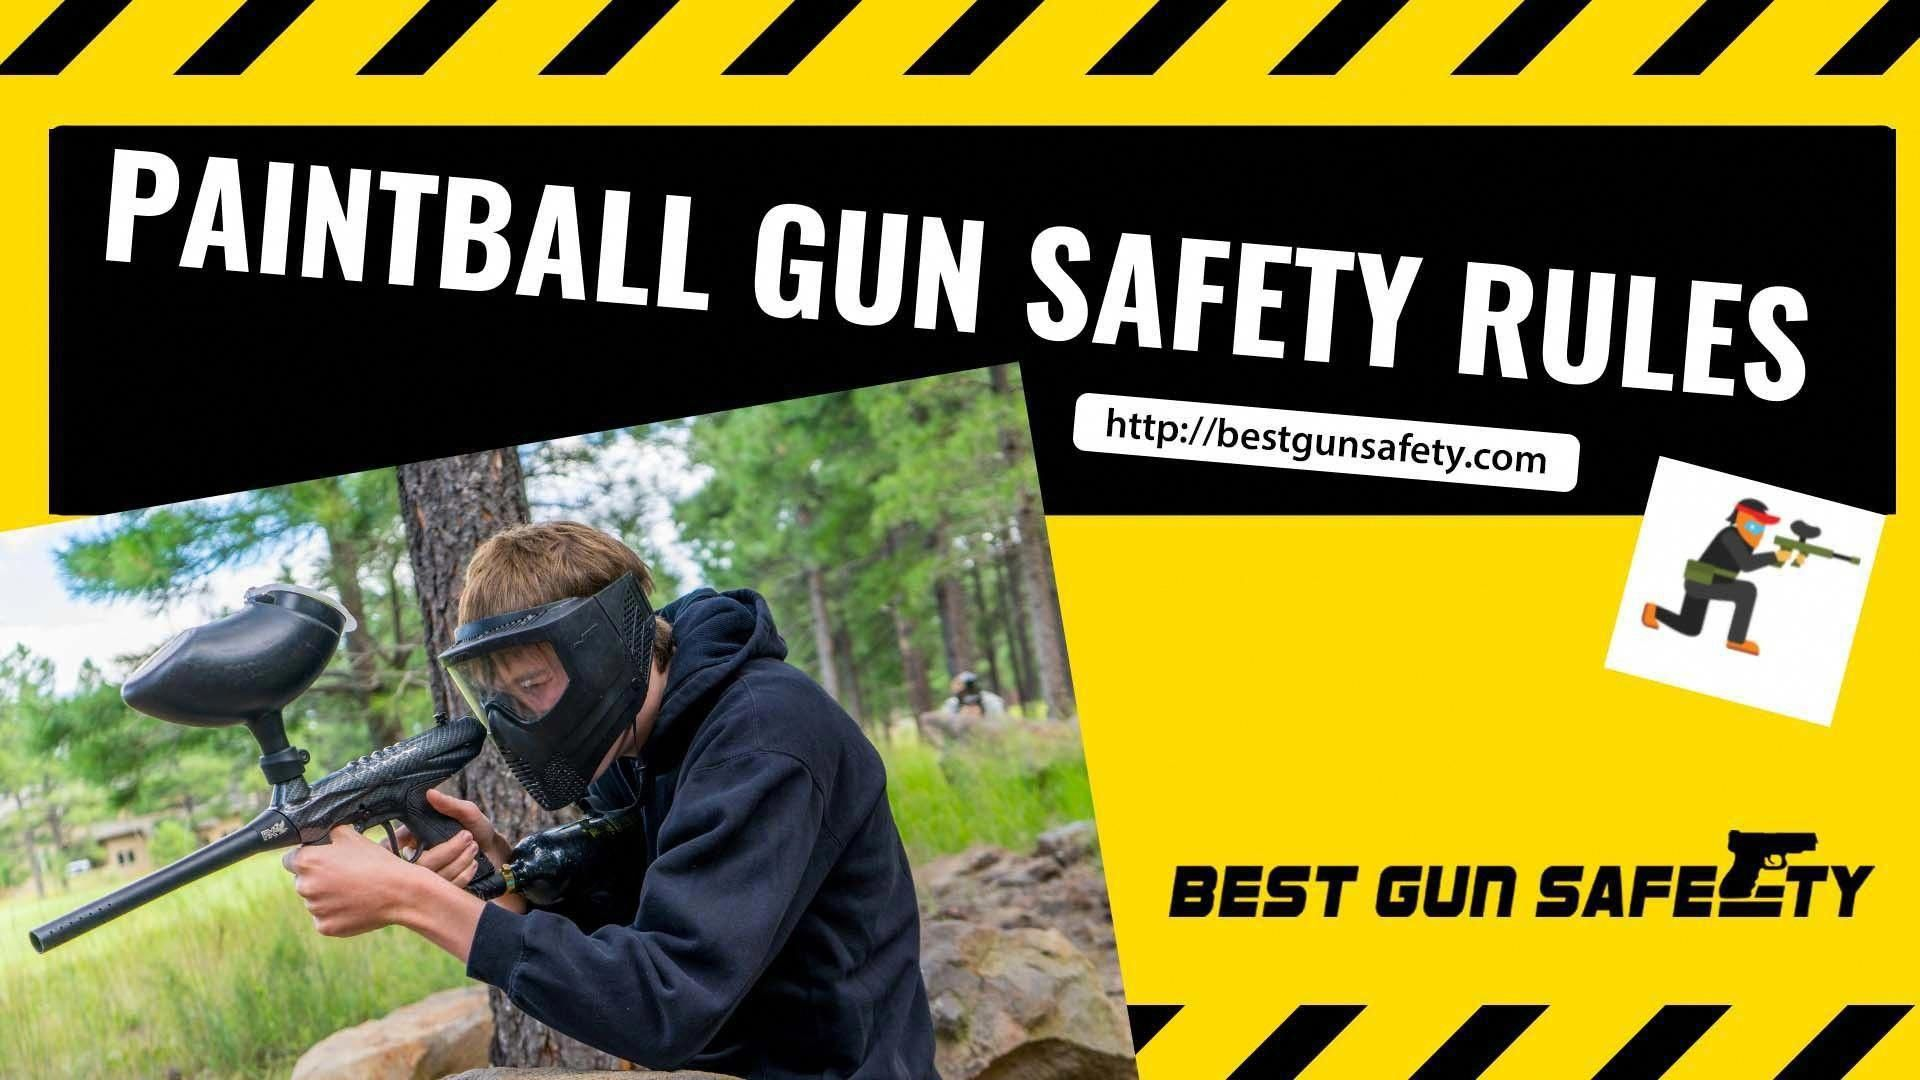 Pin on Paintball Guns Gear and Equipment